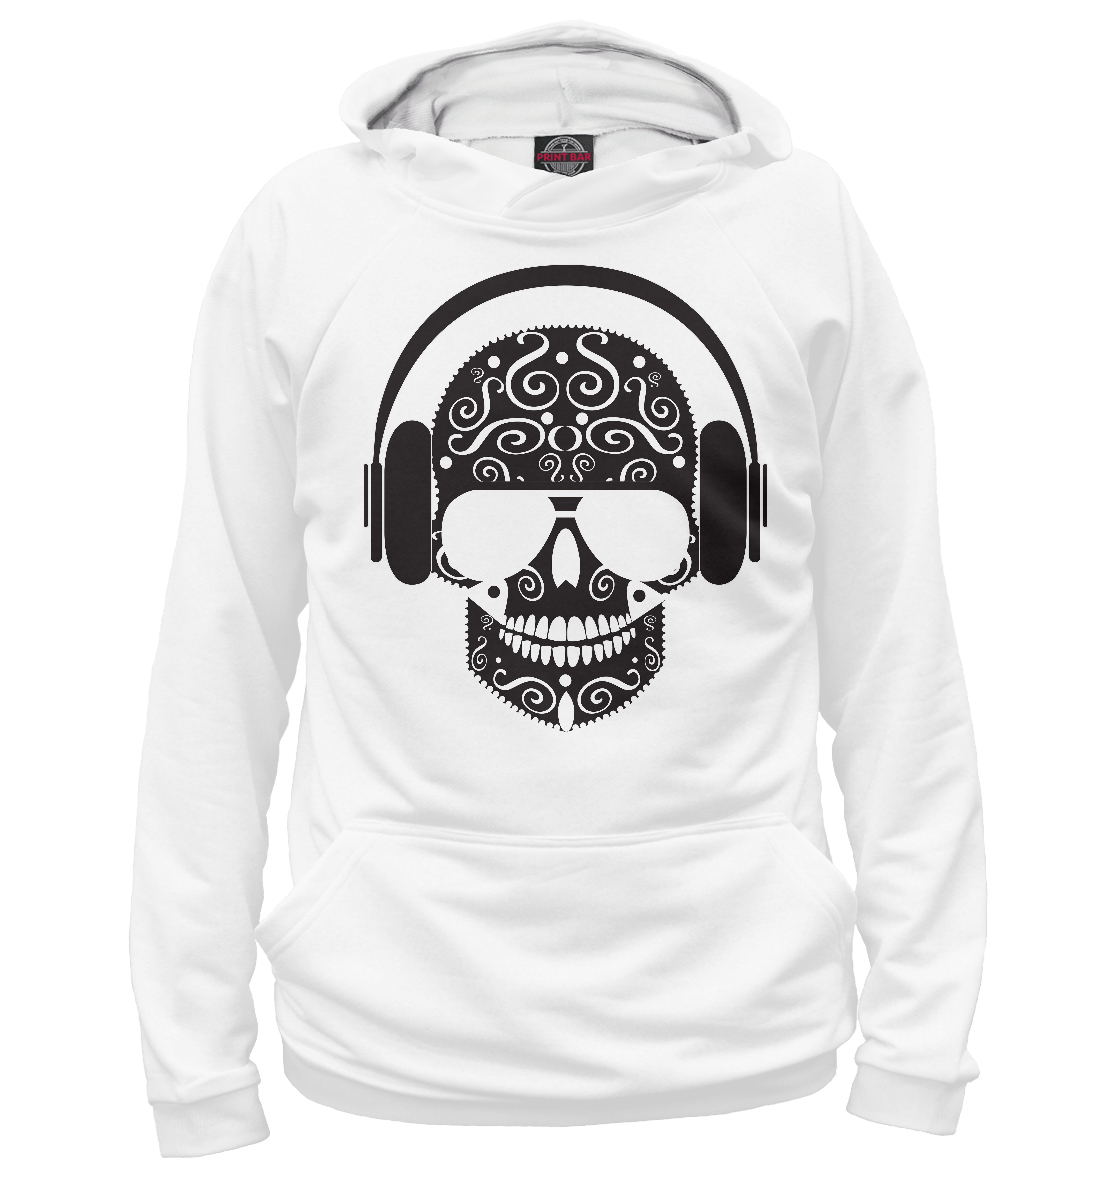 Skull Music mikael niemi popular music